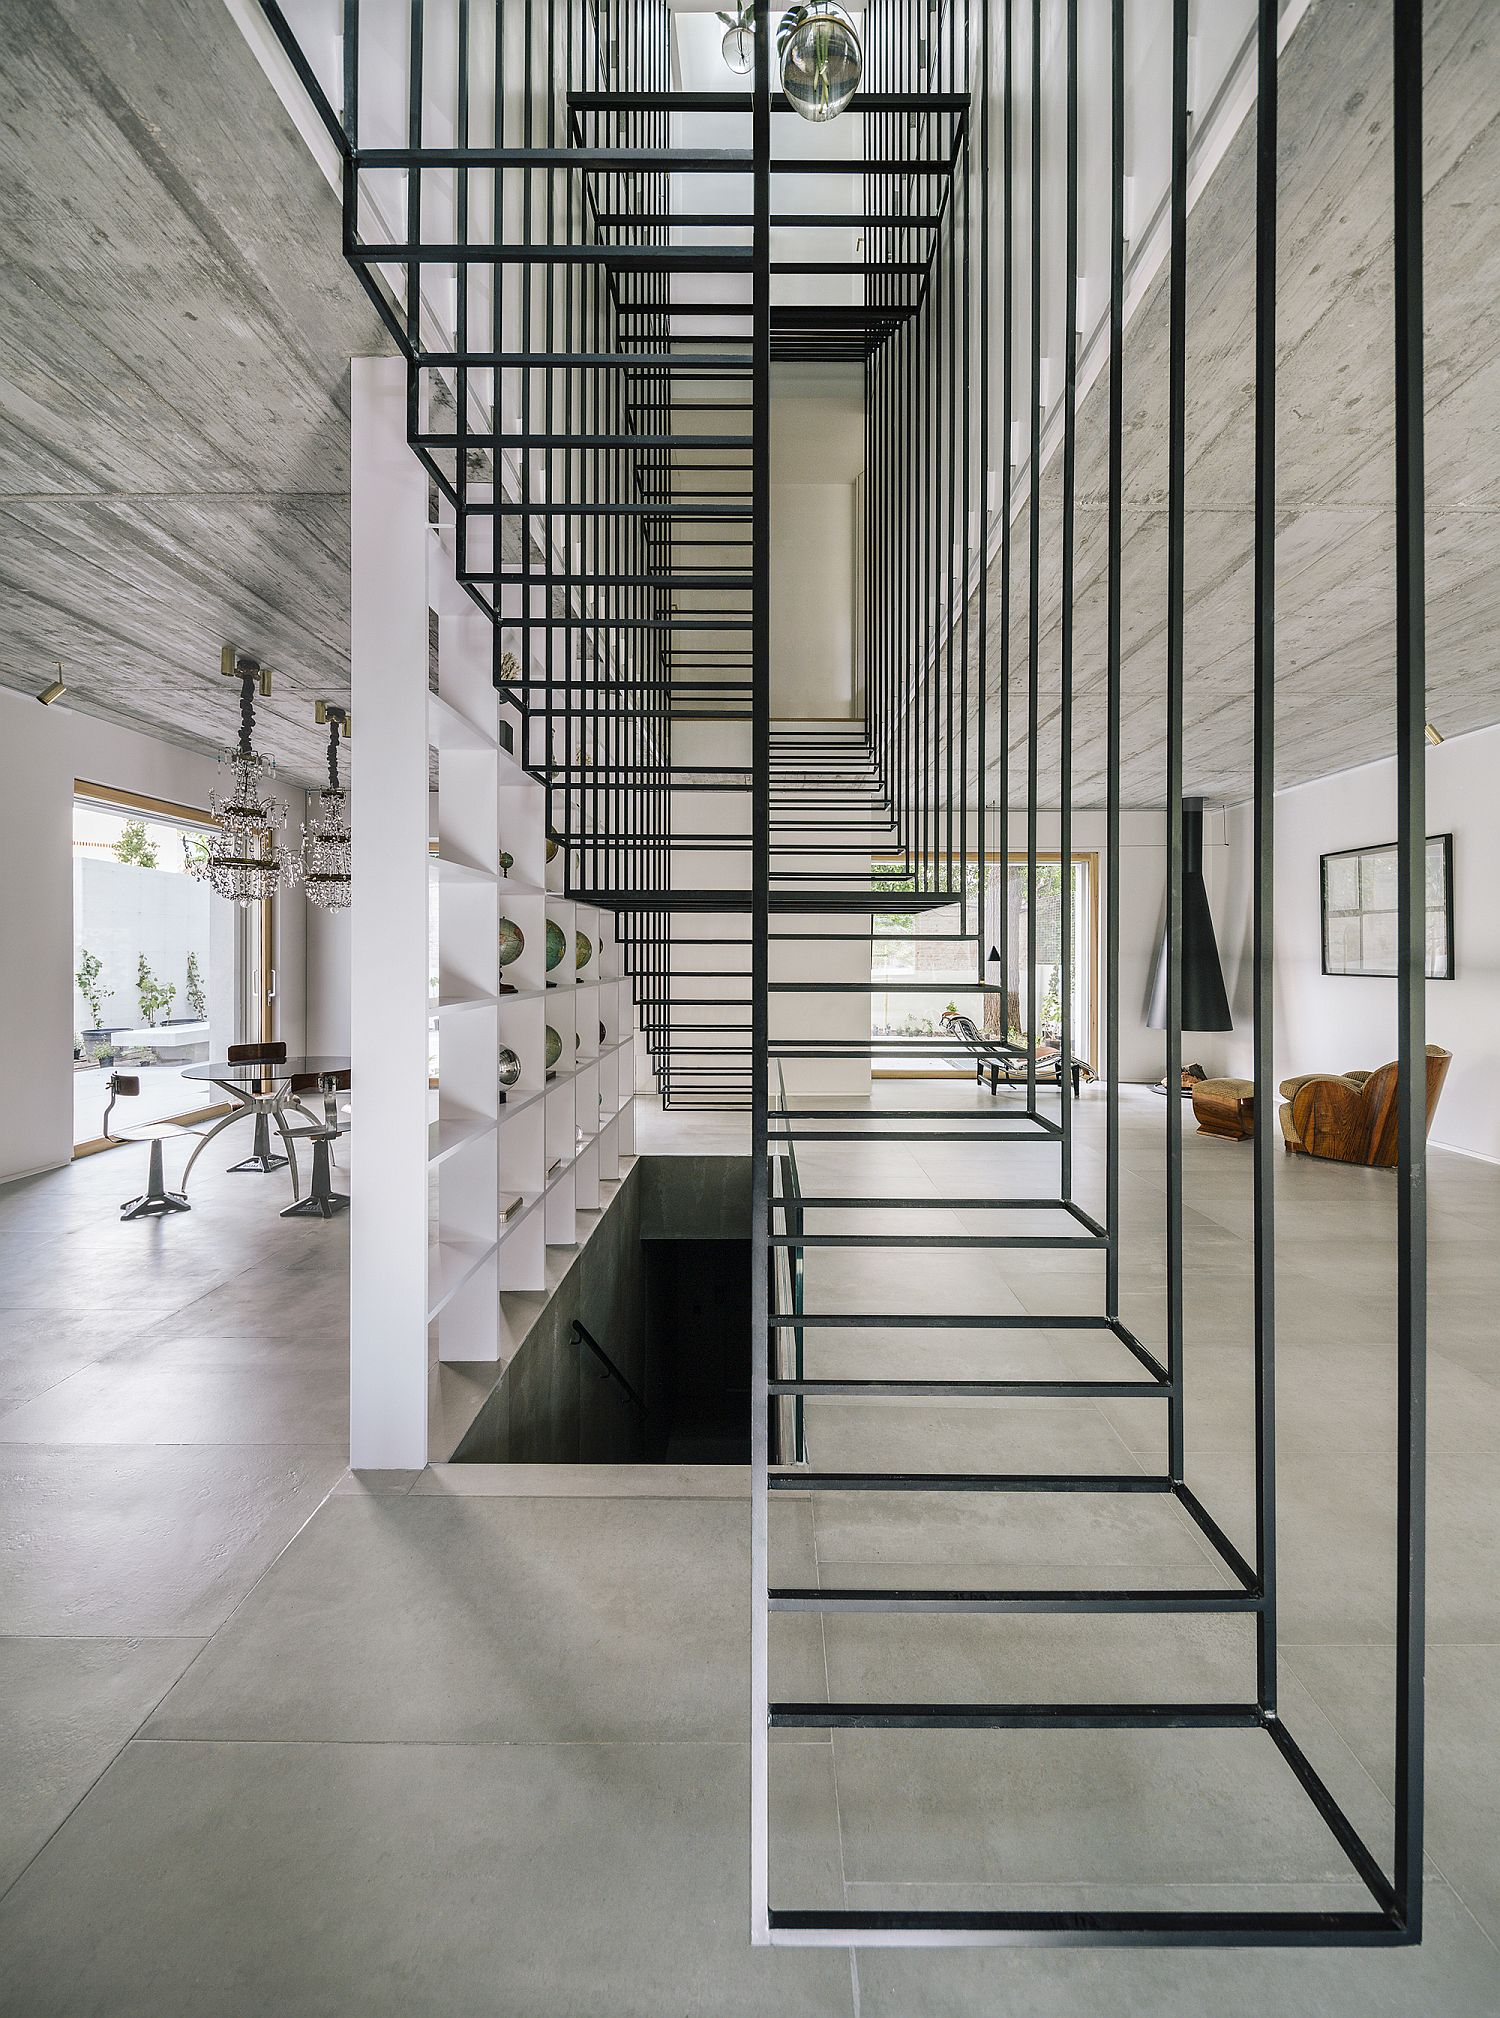 Minimal and audacious structure in glass and metal steals the show here